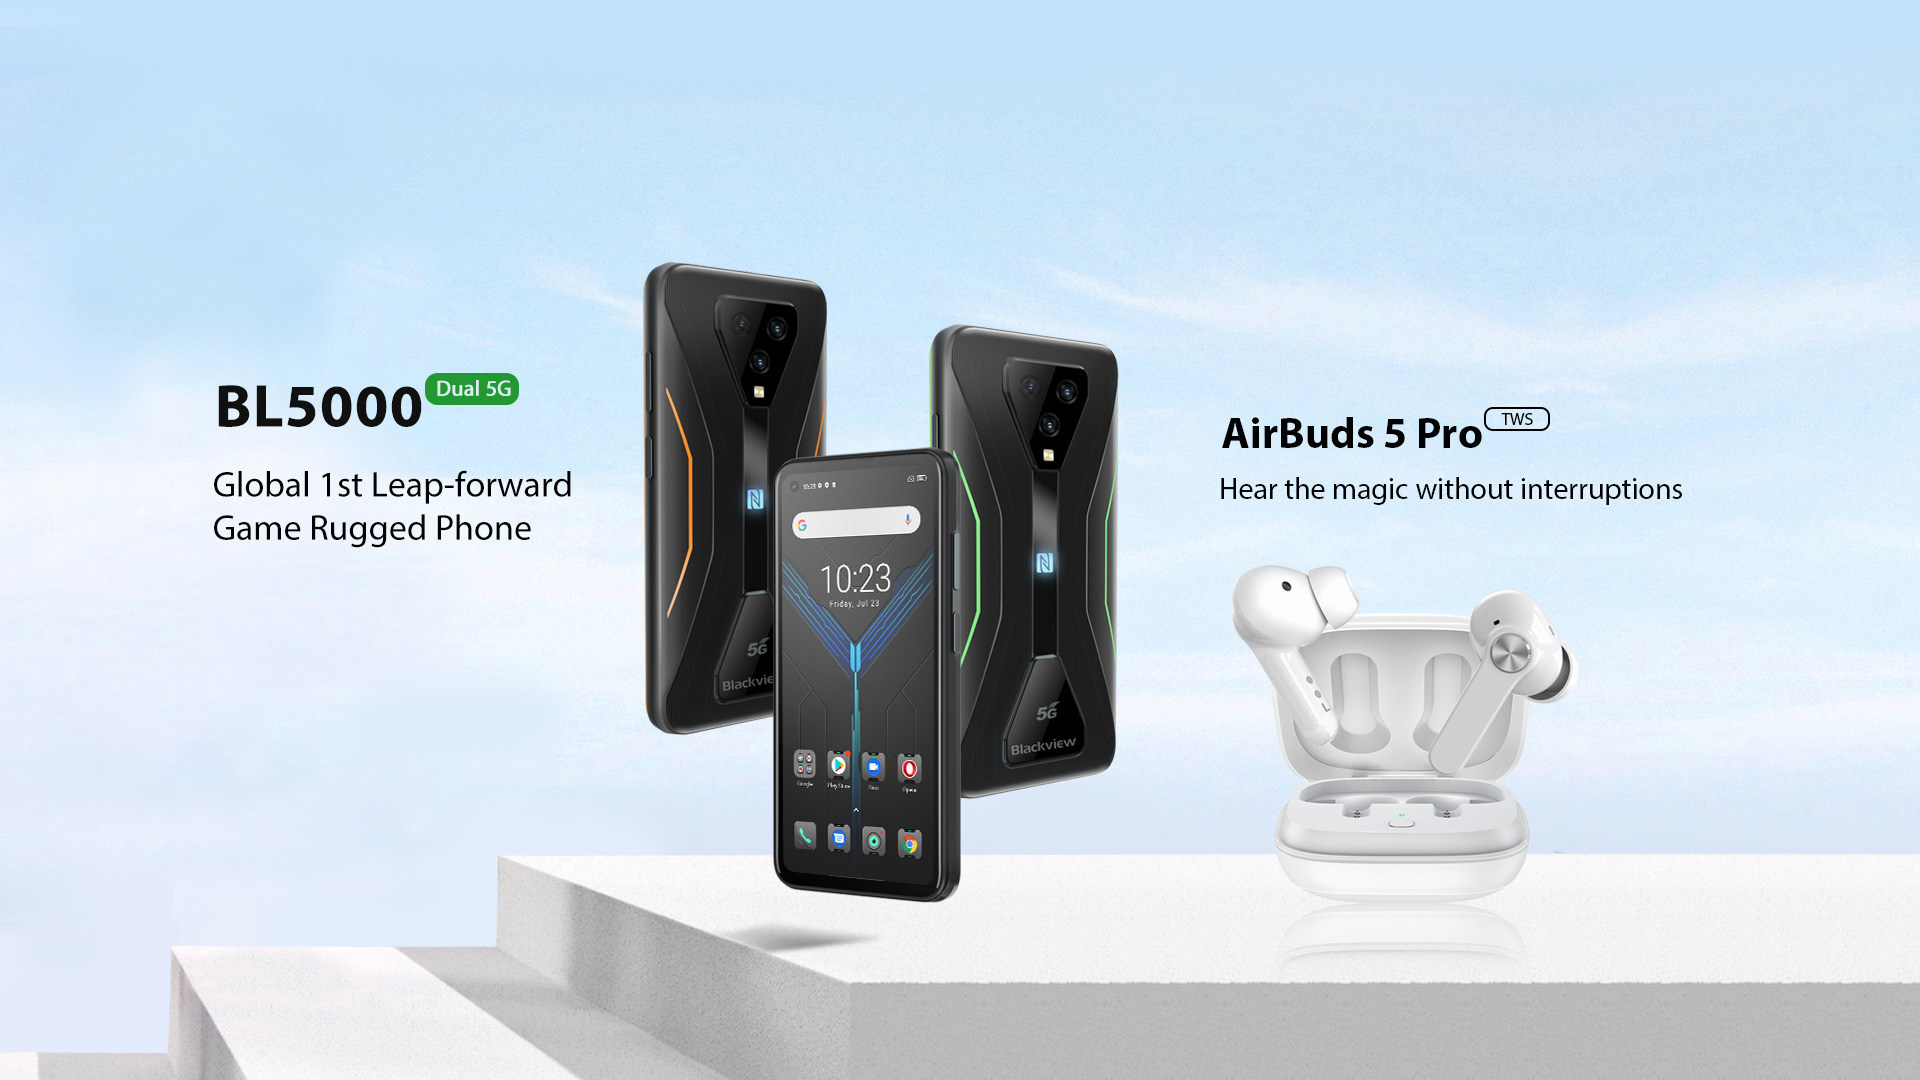 Blackview launches 2021 flagship game rugged phone and TWS earbuds -- BL5000 and AirBuds 5 Pro with powerful features